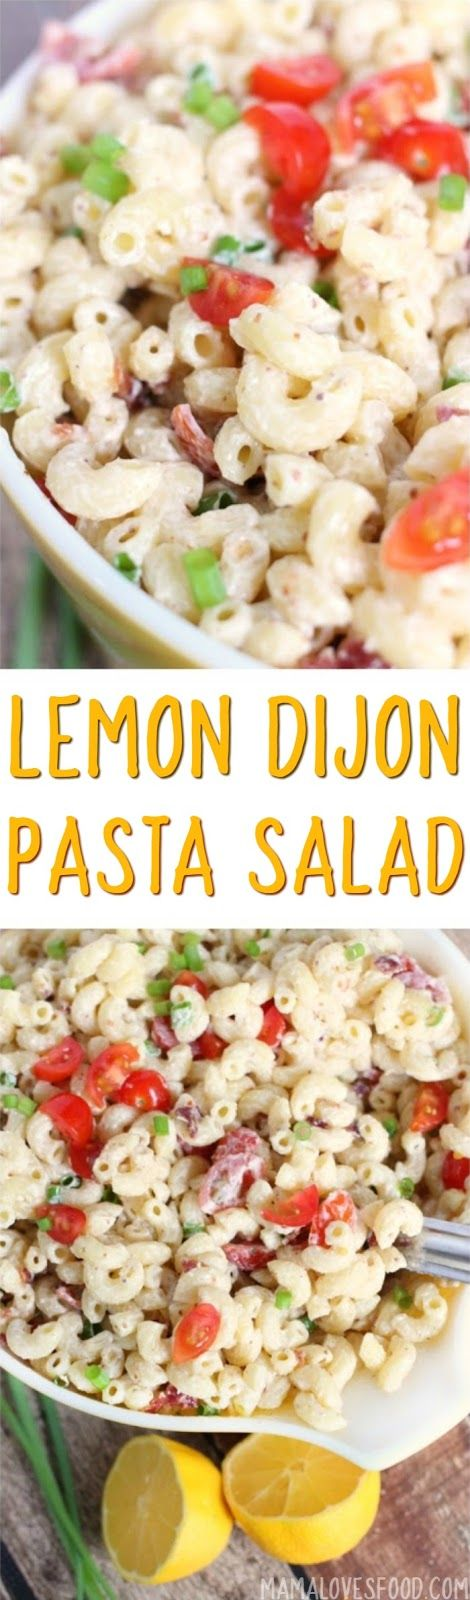 everyone loved it! will make again!!!     Lemon Dijon Bacon Pasta Salad Recipe - How to Make the Best Macaroni Salad Ever (Best Ever Pasta)